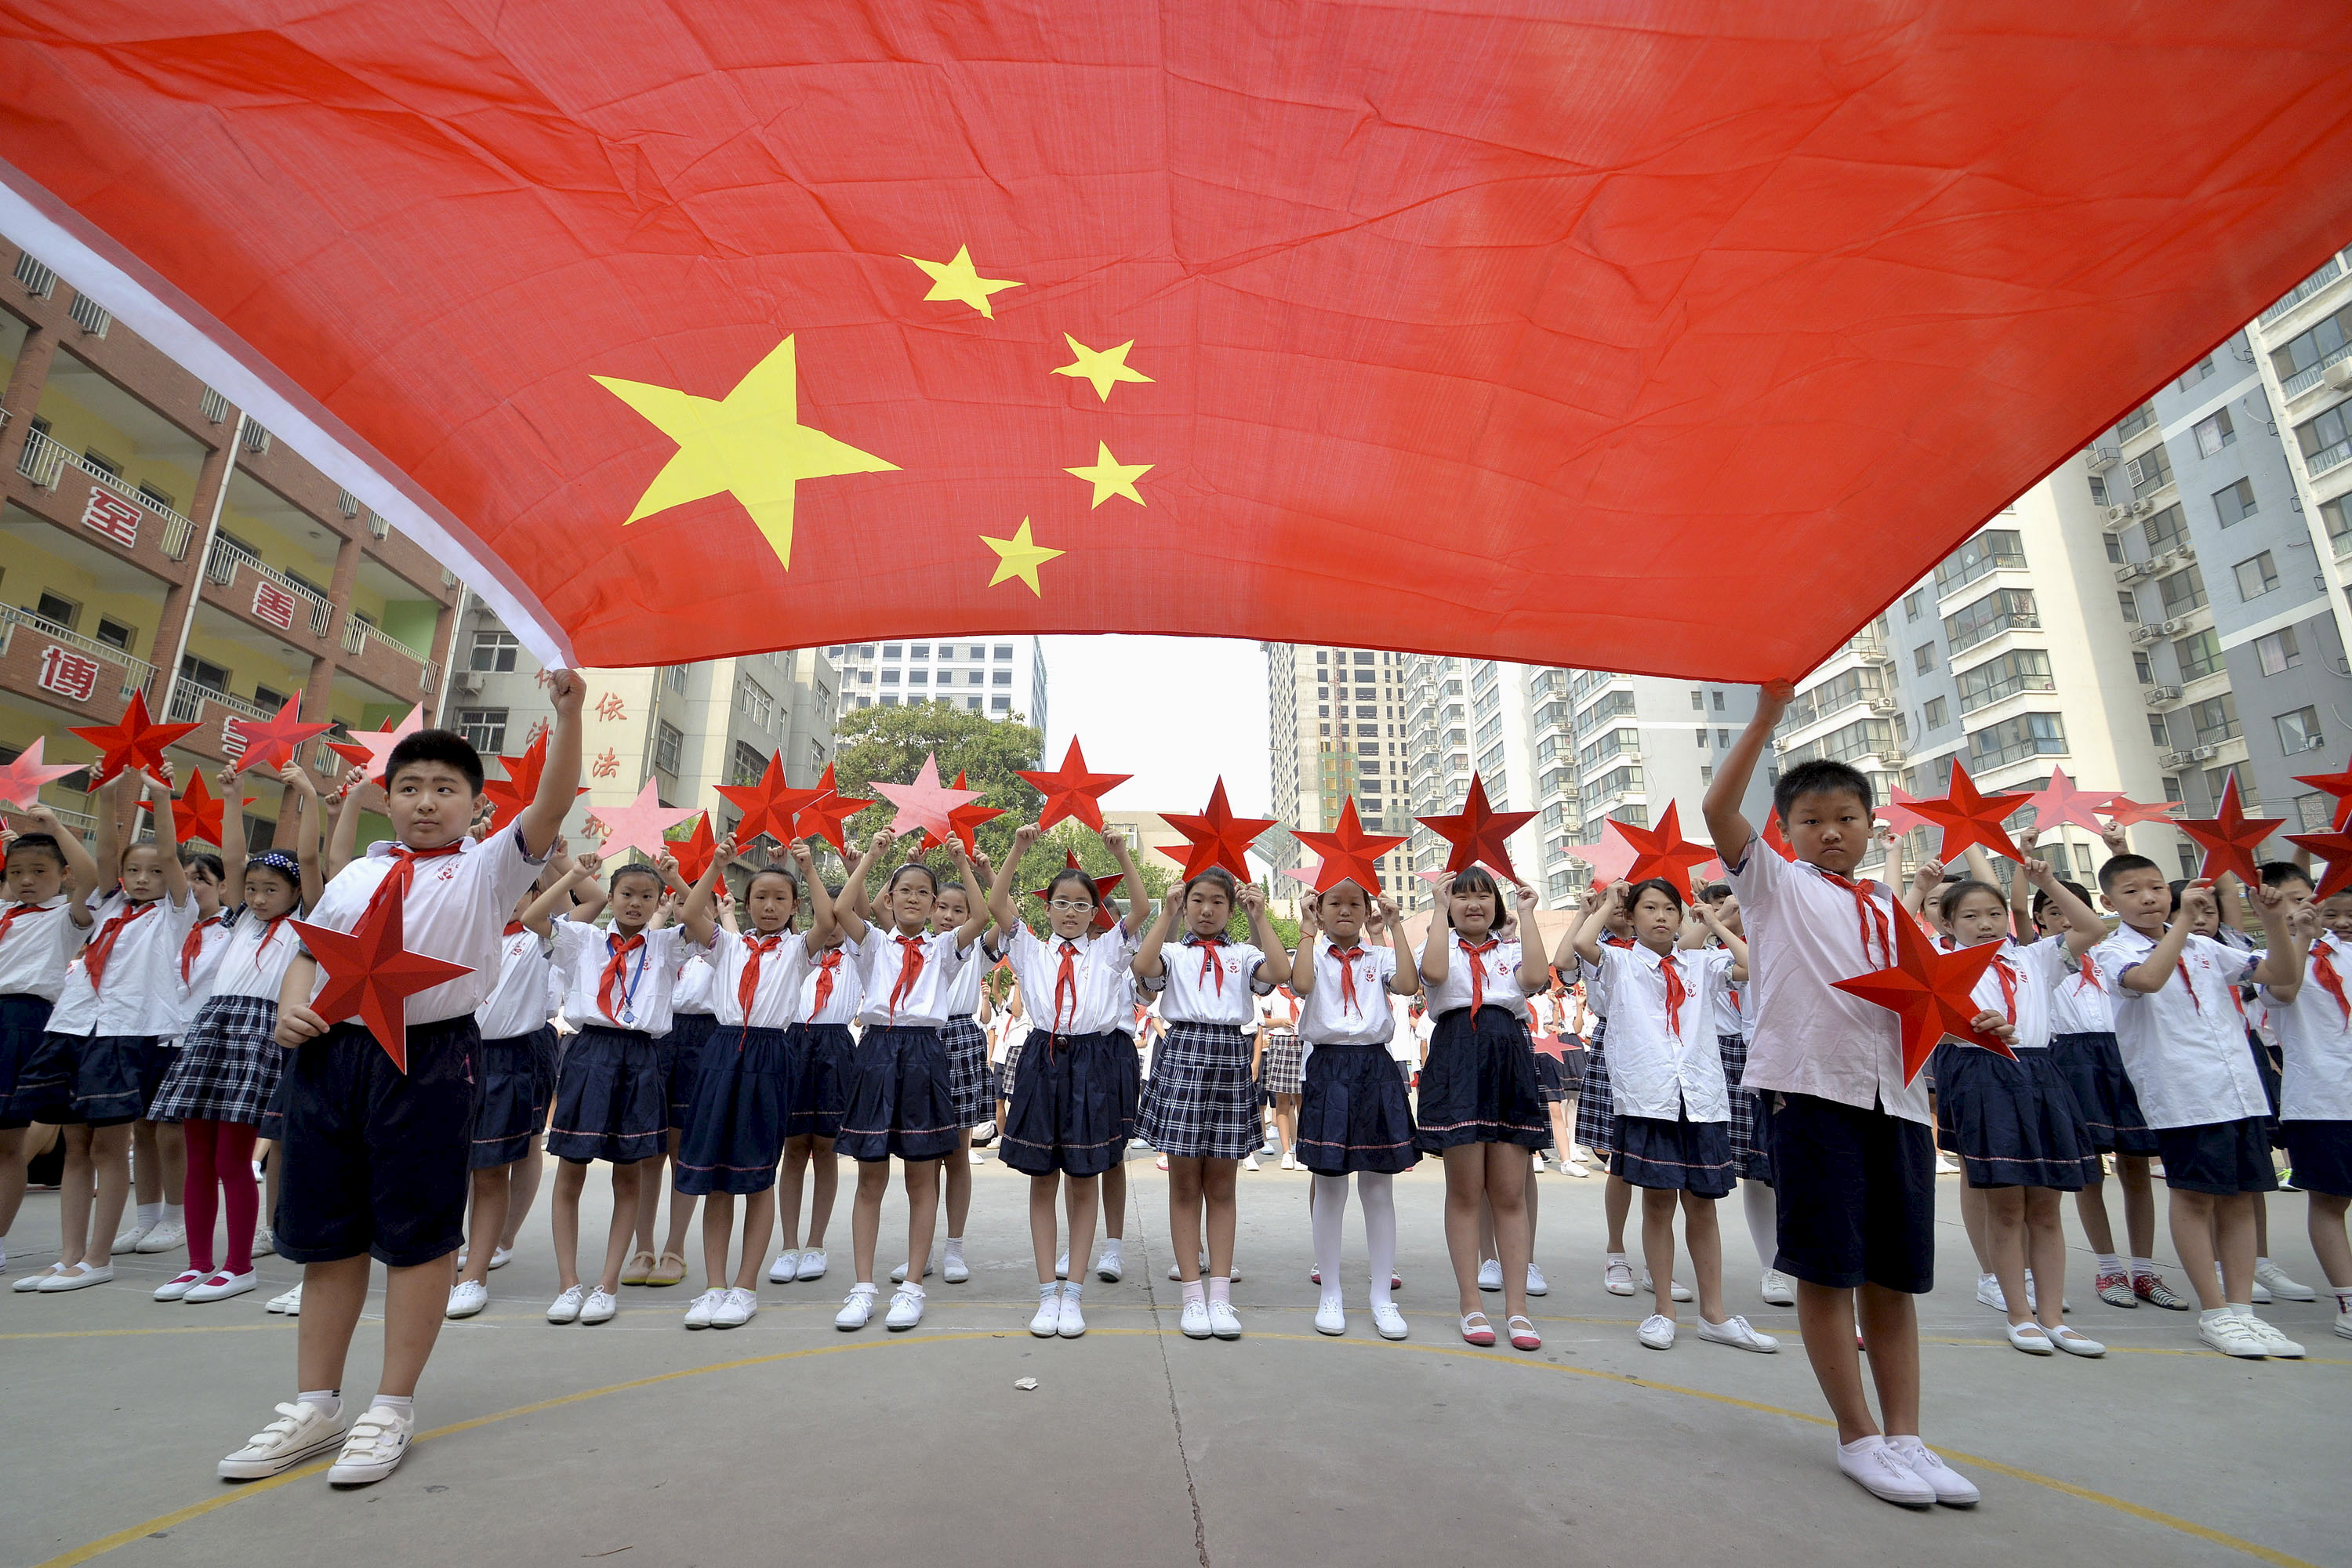 Students pose with a Chinese national flag and red stars during an event to mark the 70th anniversary of Japan's World War II surrender at a primary school in Handan, Hebei province, China, on Aug. 31, 2015